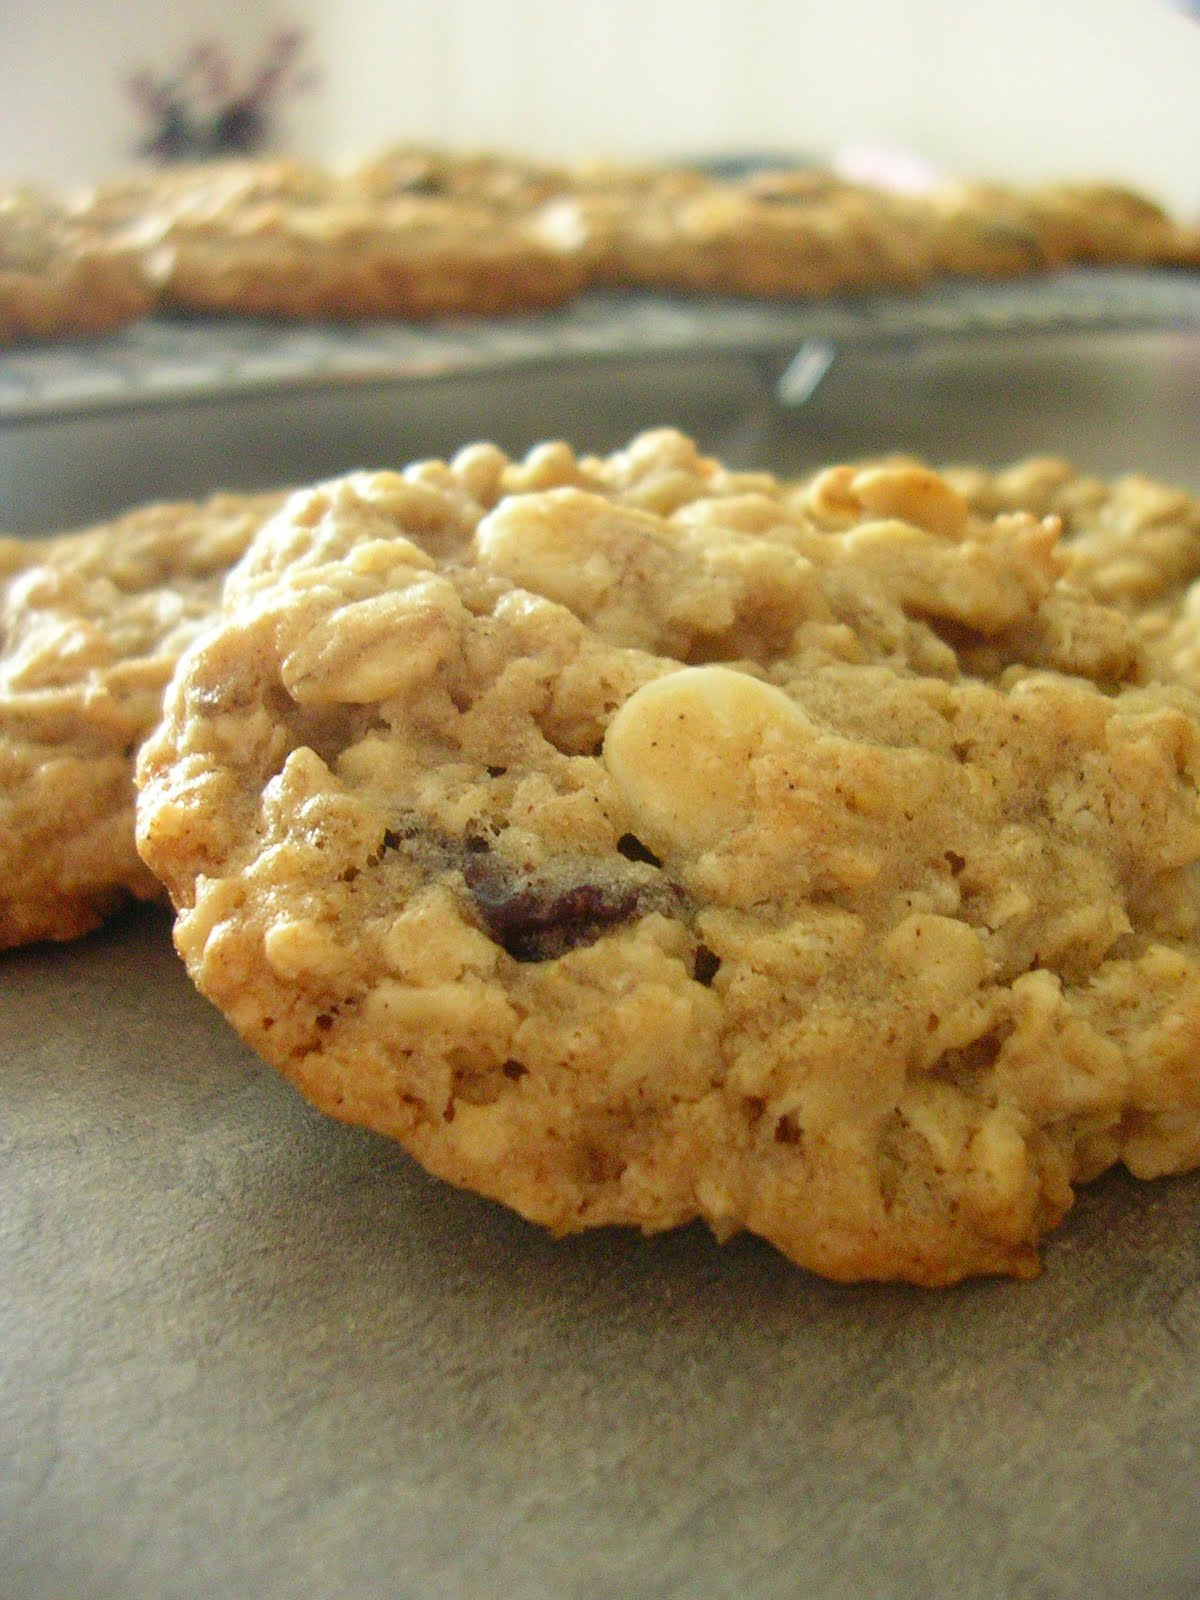 The Busty Baker: White Chocolate Cherry Oatmeal Cookies